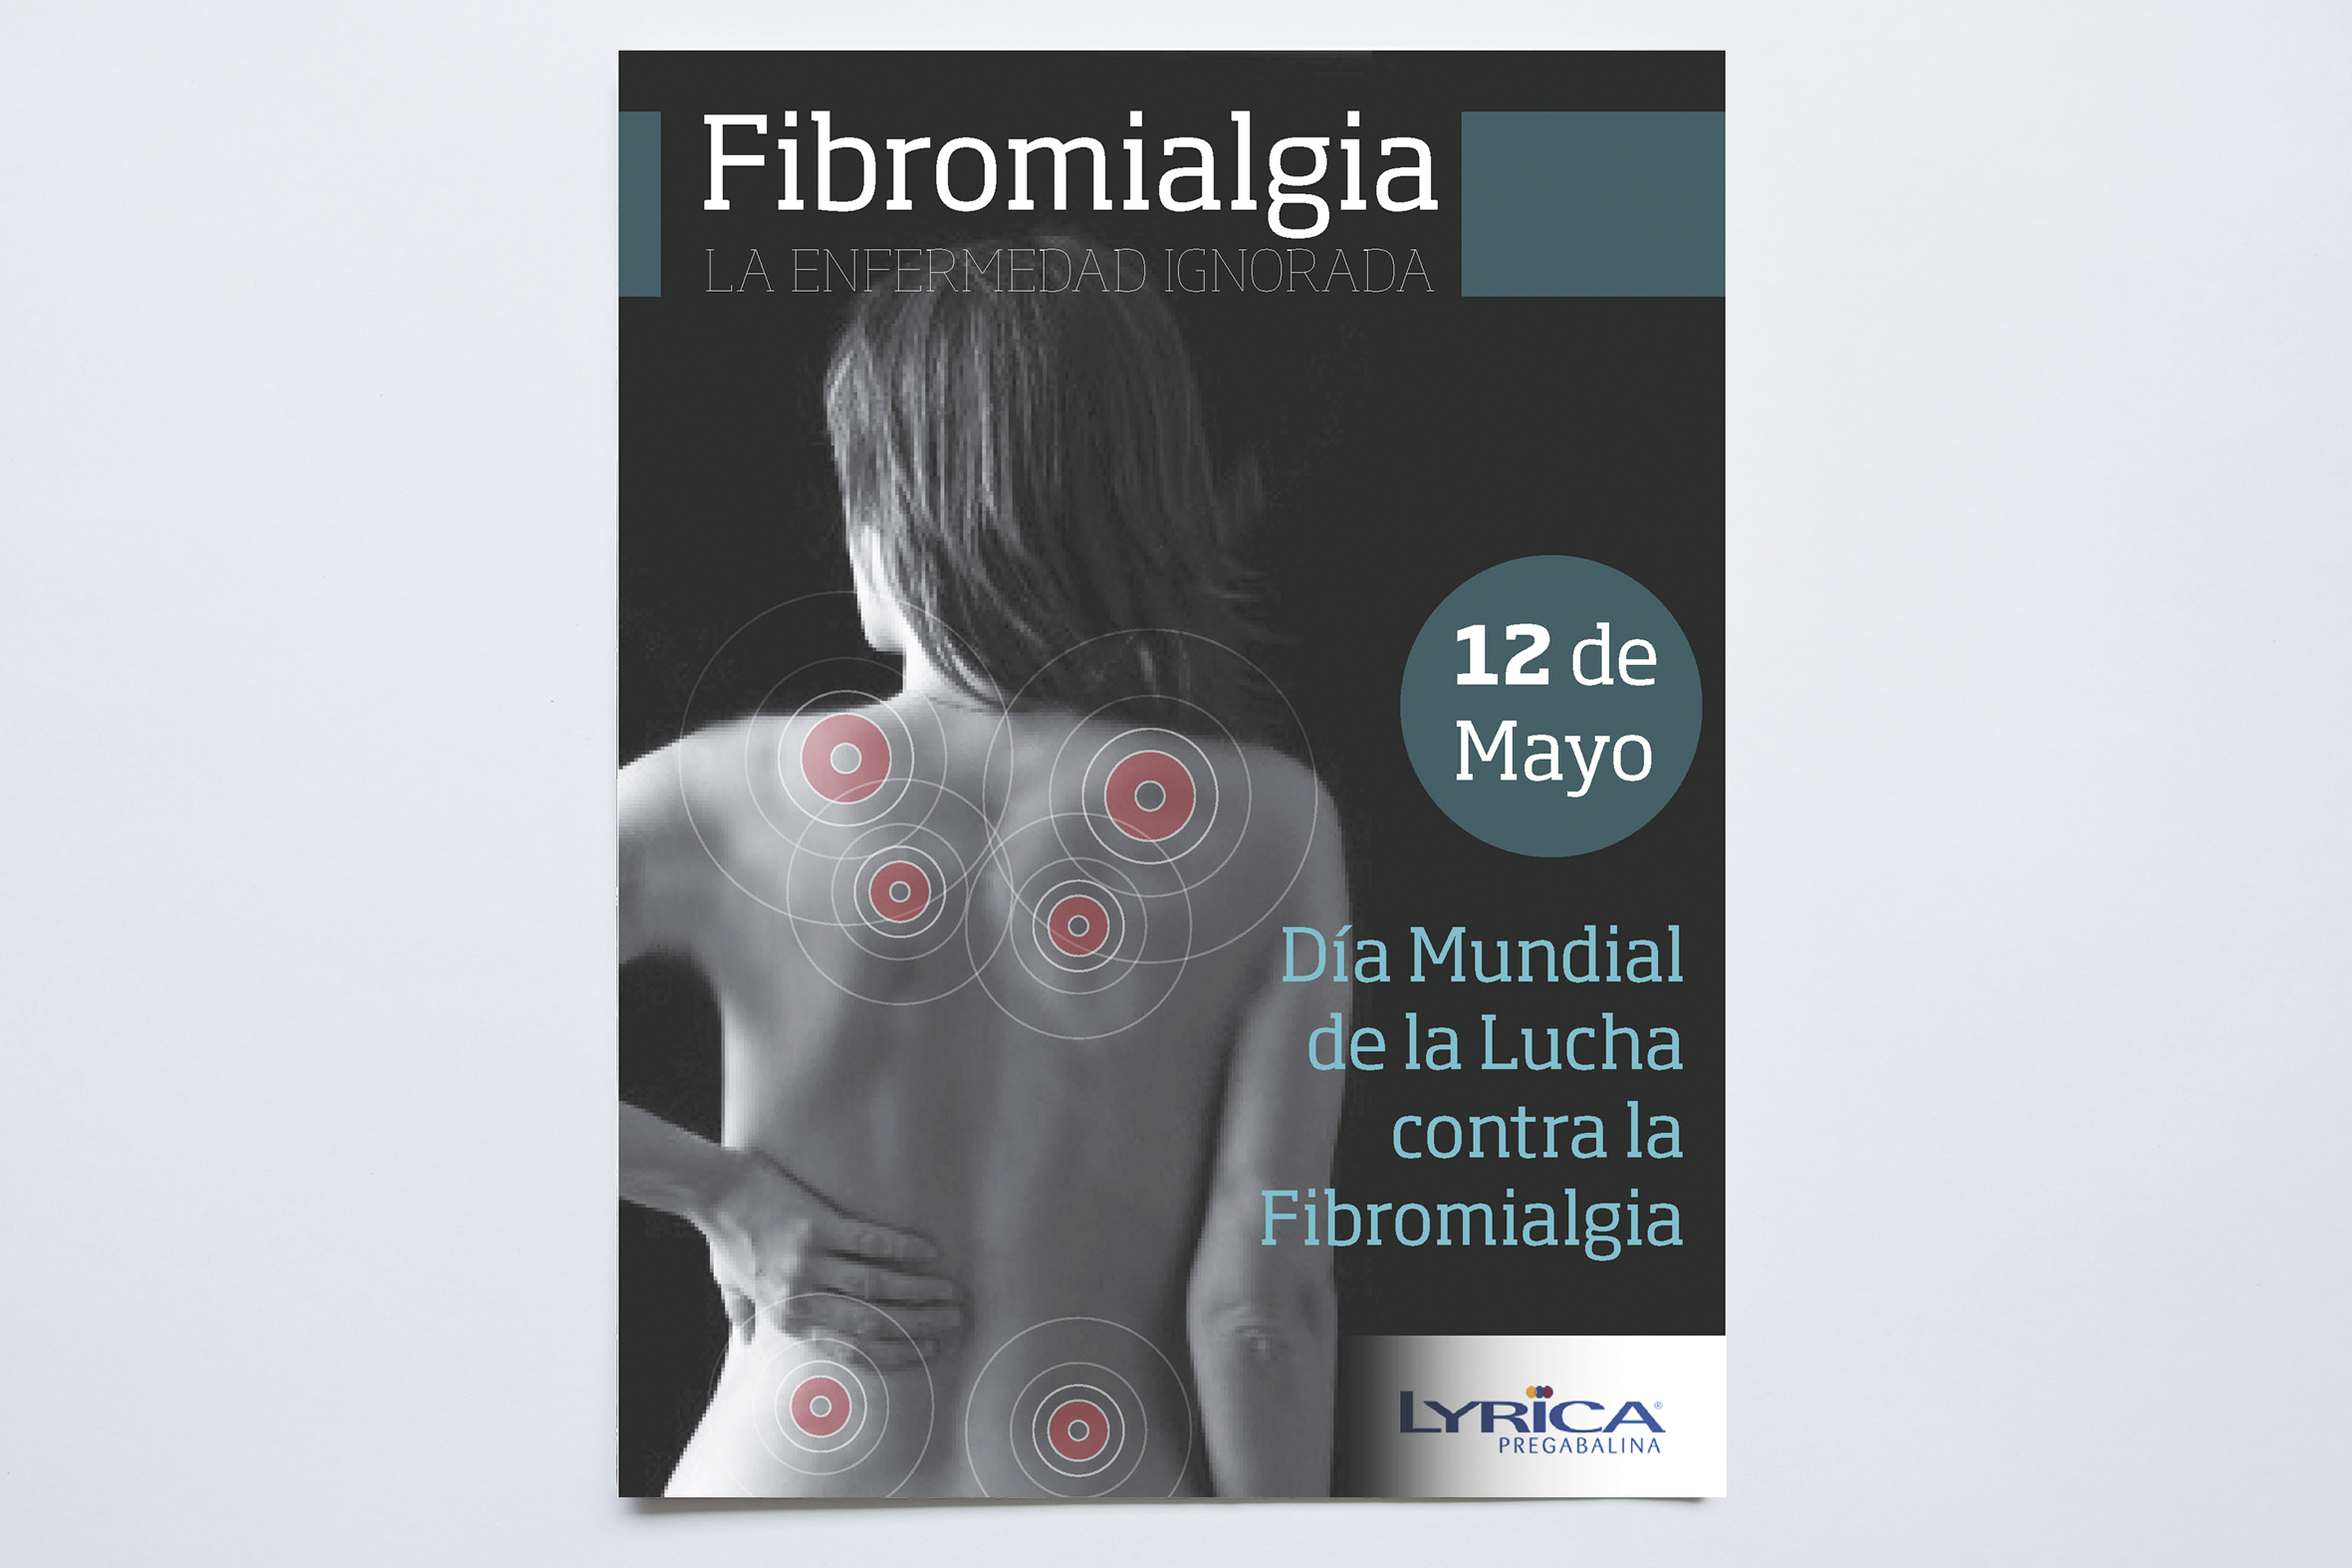 editorial_fibromialgia1